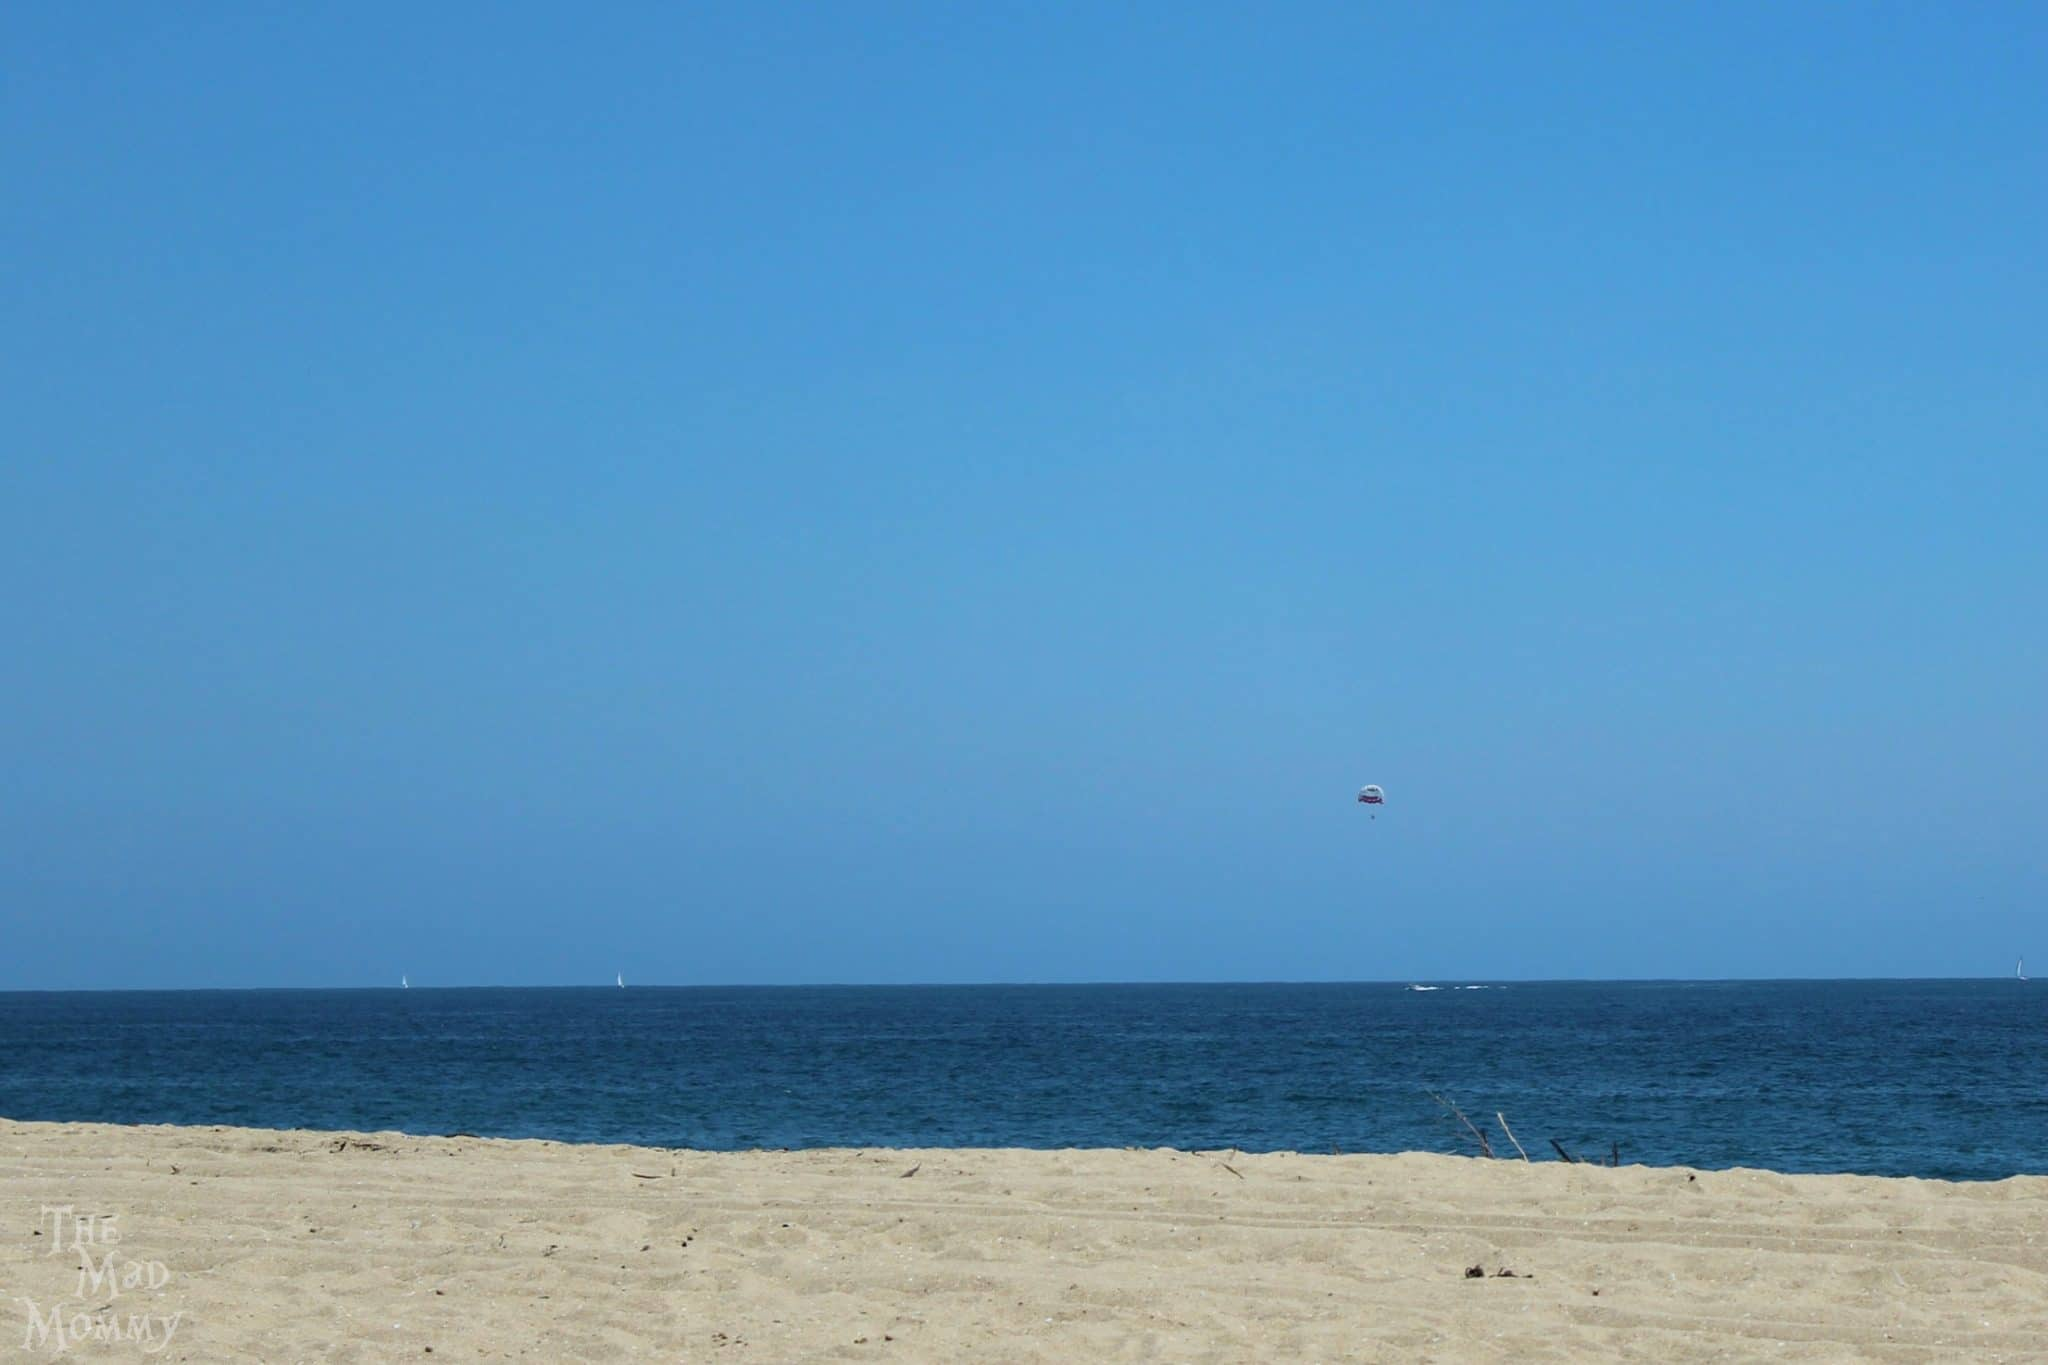 My first sight of the Pacific ocean in Newport Beach, California.